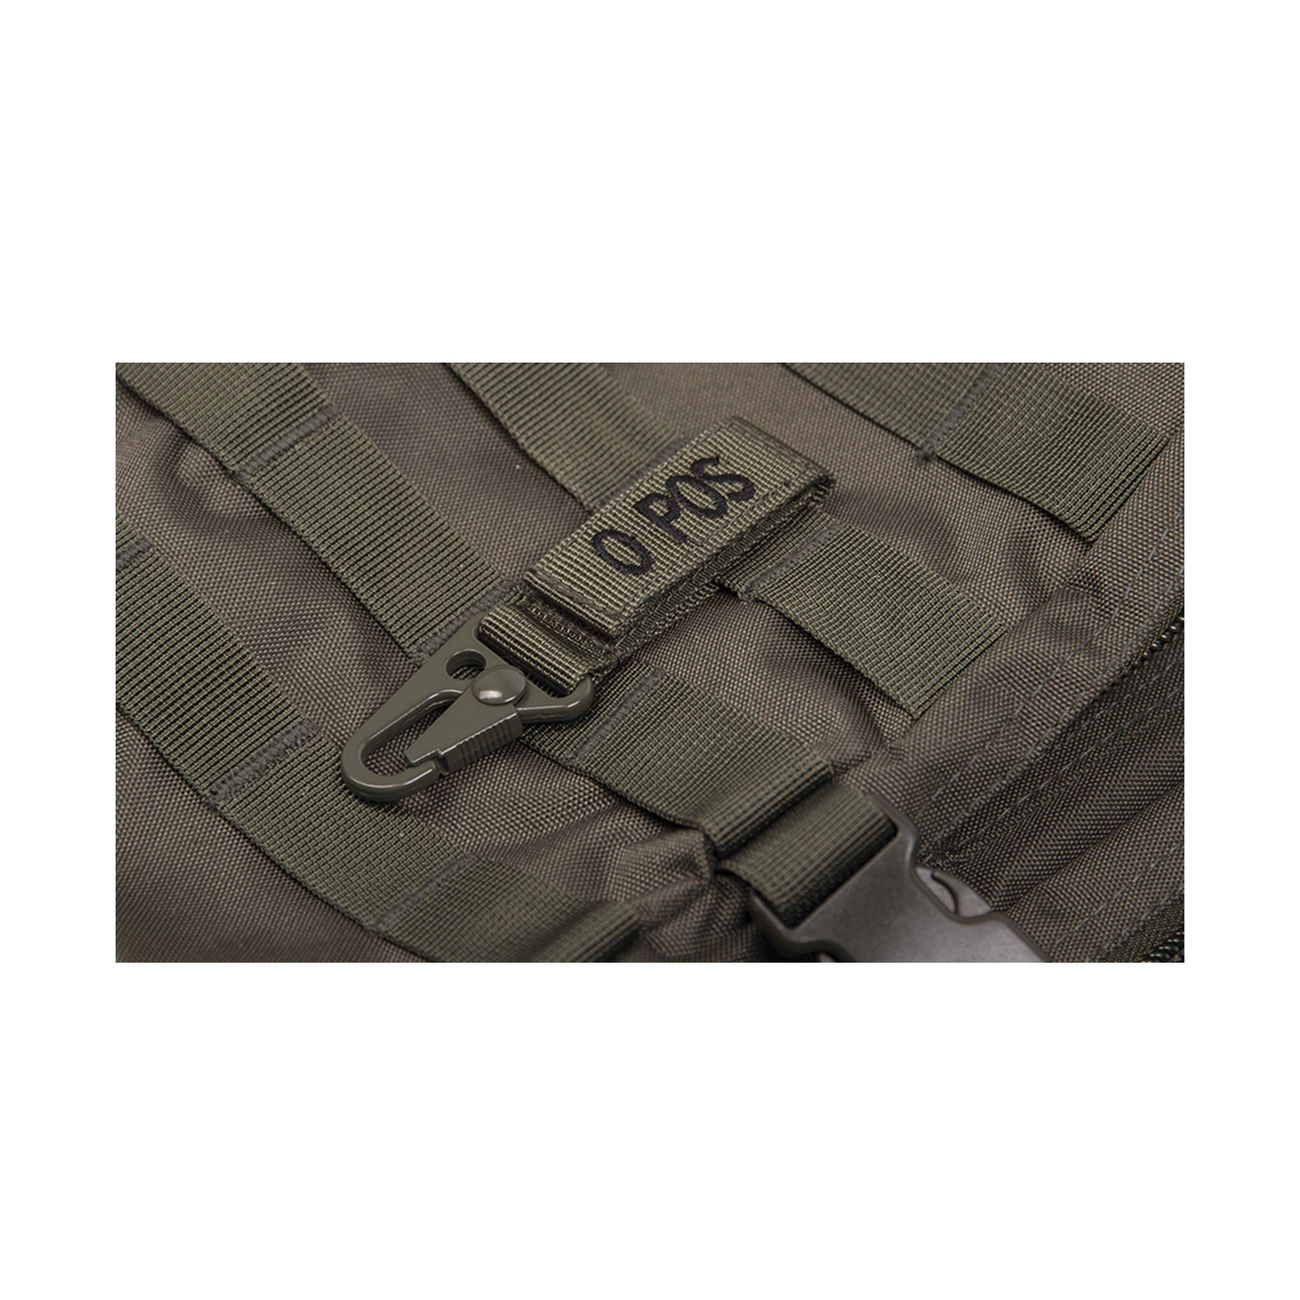 TACTICAL KEYHOLDER BLUTGRUPPE 0 POSITIV OLIV MILITARY ARMY BW AIRSOFT OUTDOOR